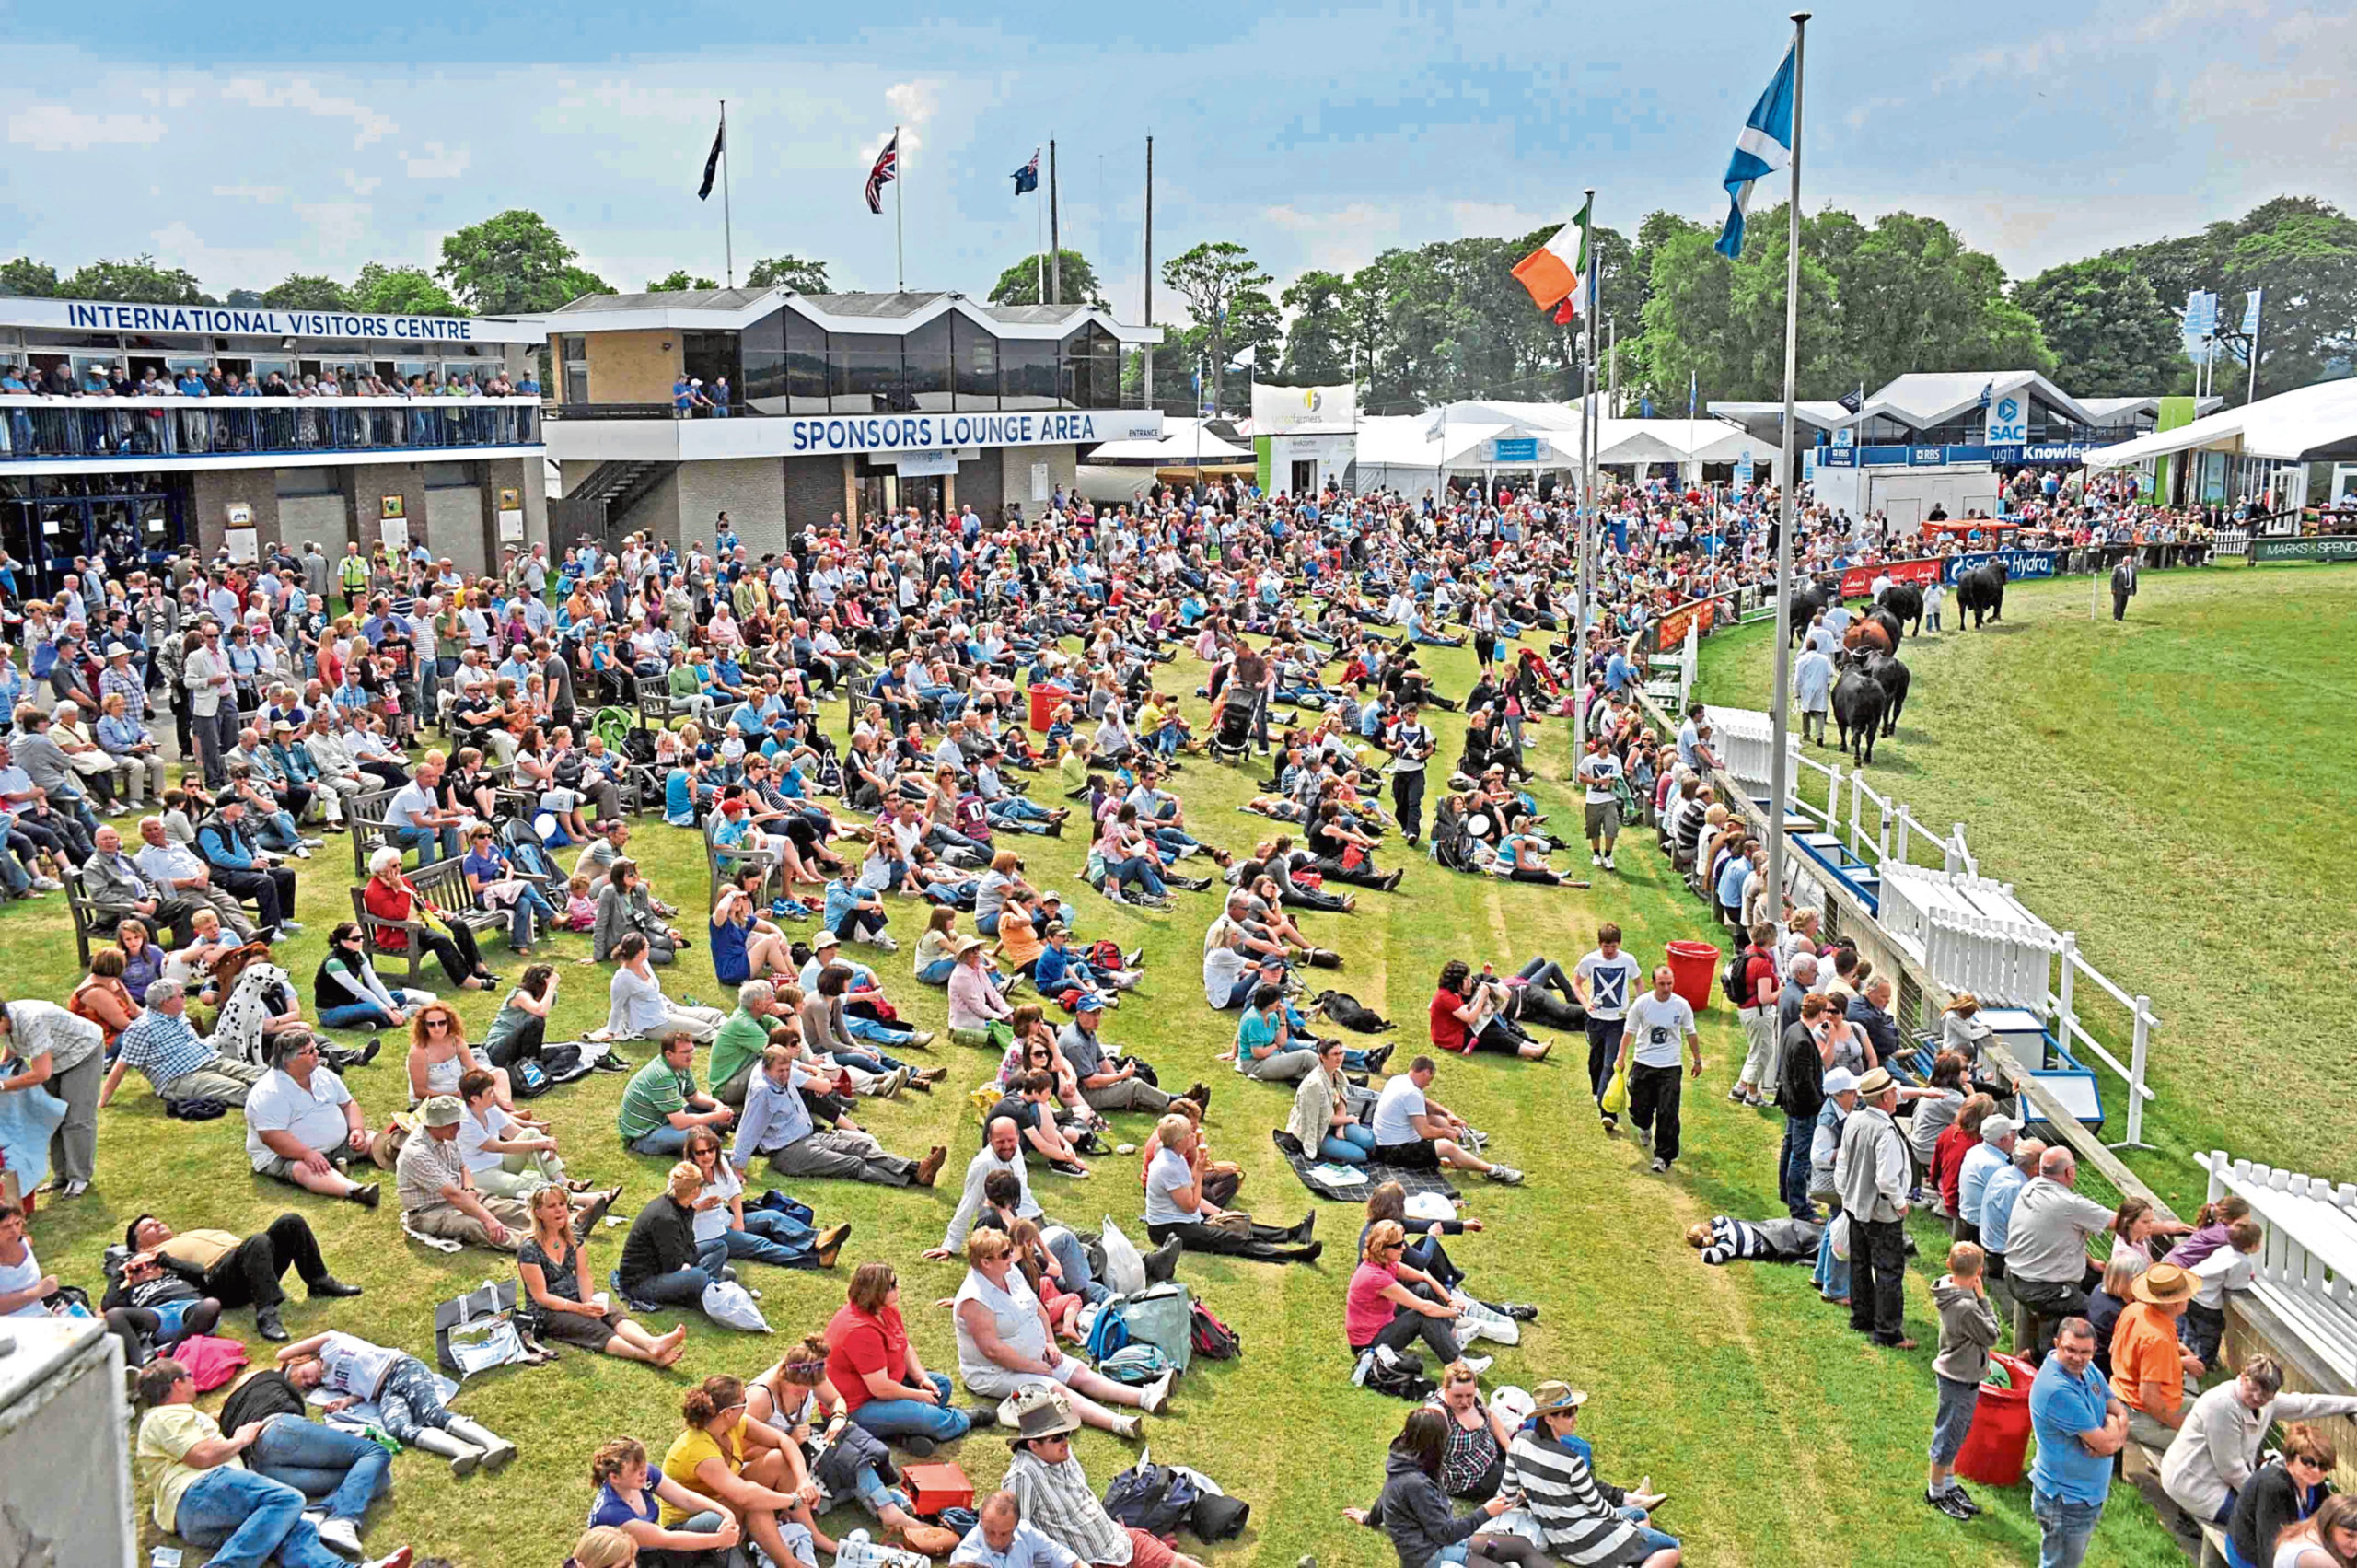 The show is Scotland's largest outdoor  event, attracting up  to 200,000 people each year.